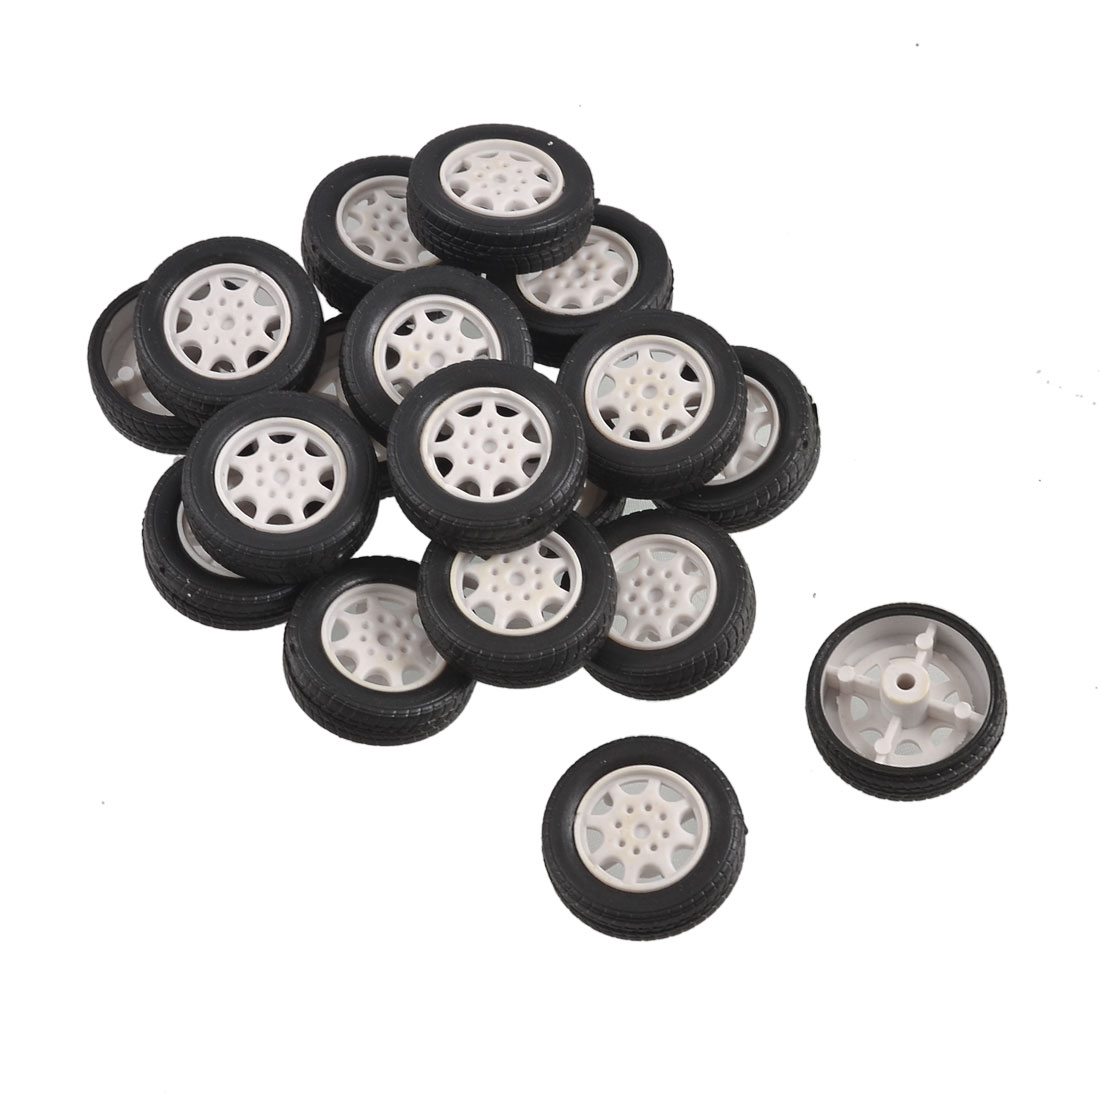 25mm Dia Rubber Roll Plastic Core Toy Car Truck Wheels 18 Pcs